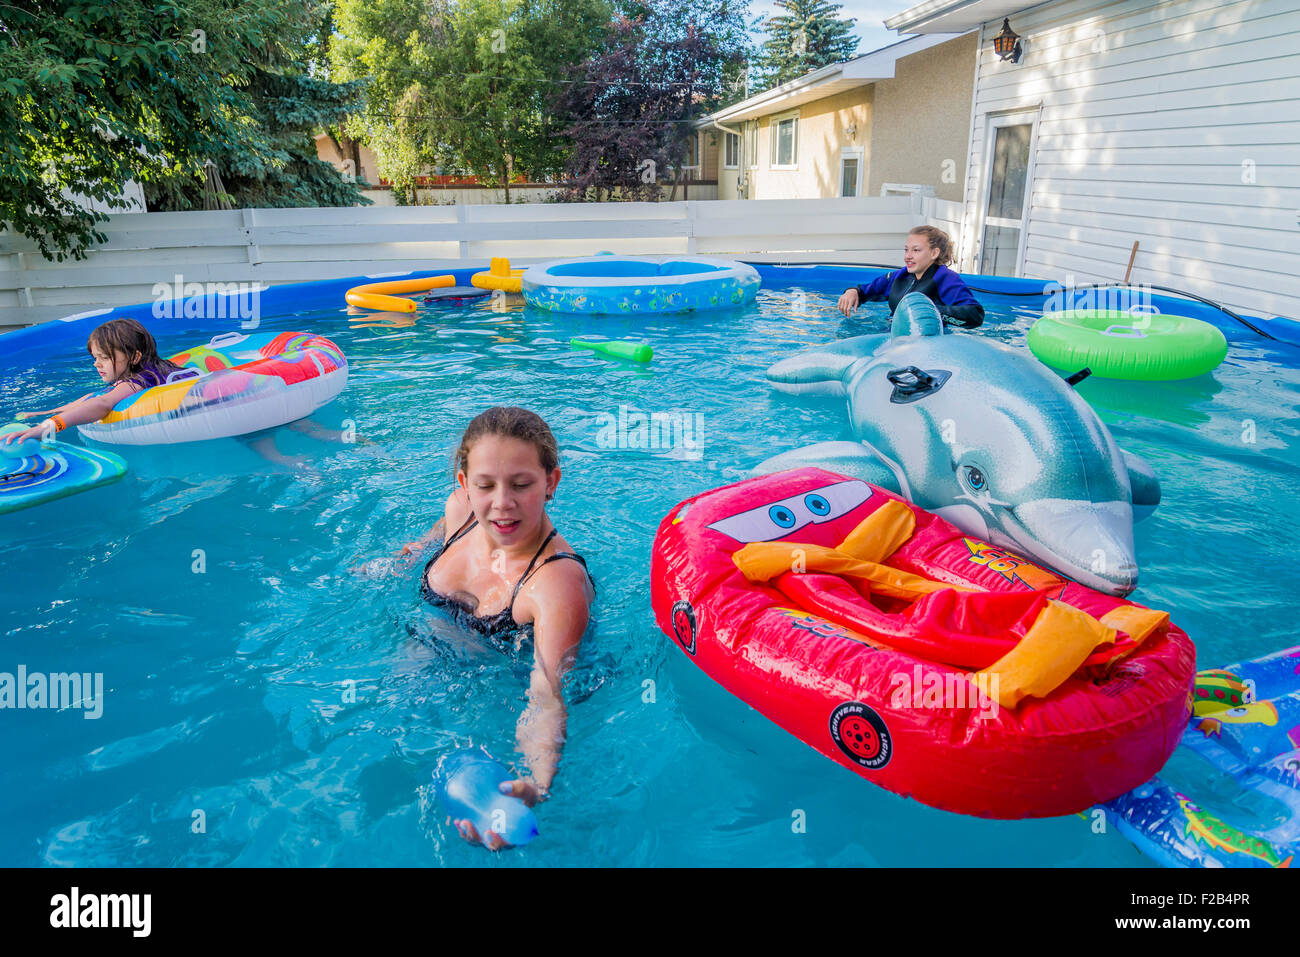 Girls In Above Ground Backyard Swimming Pool Stock Photo Alamy